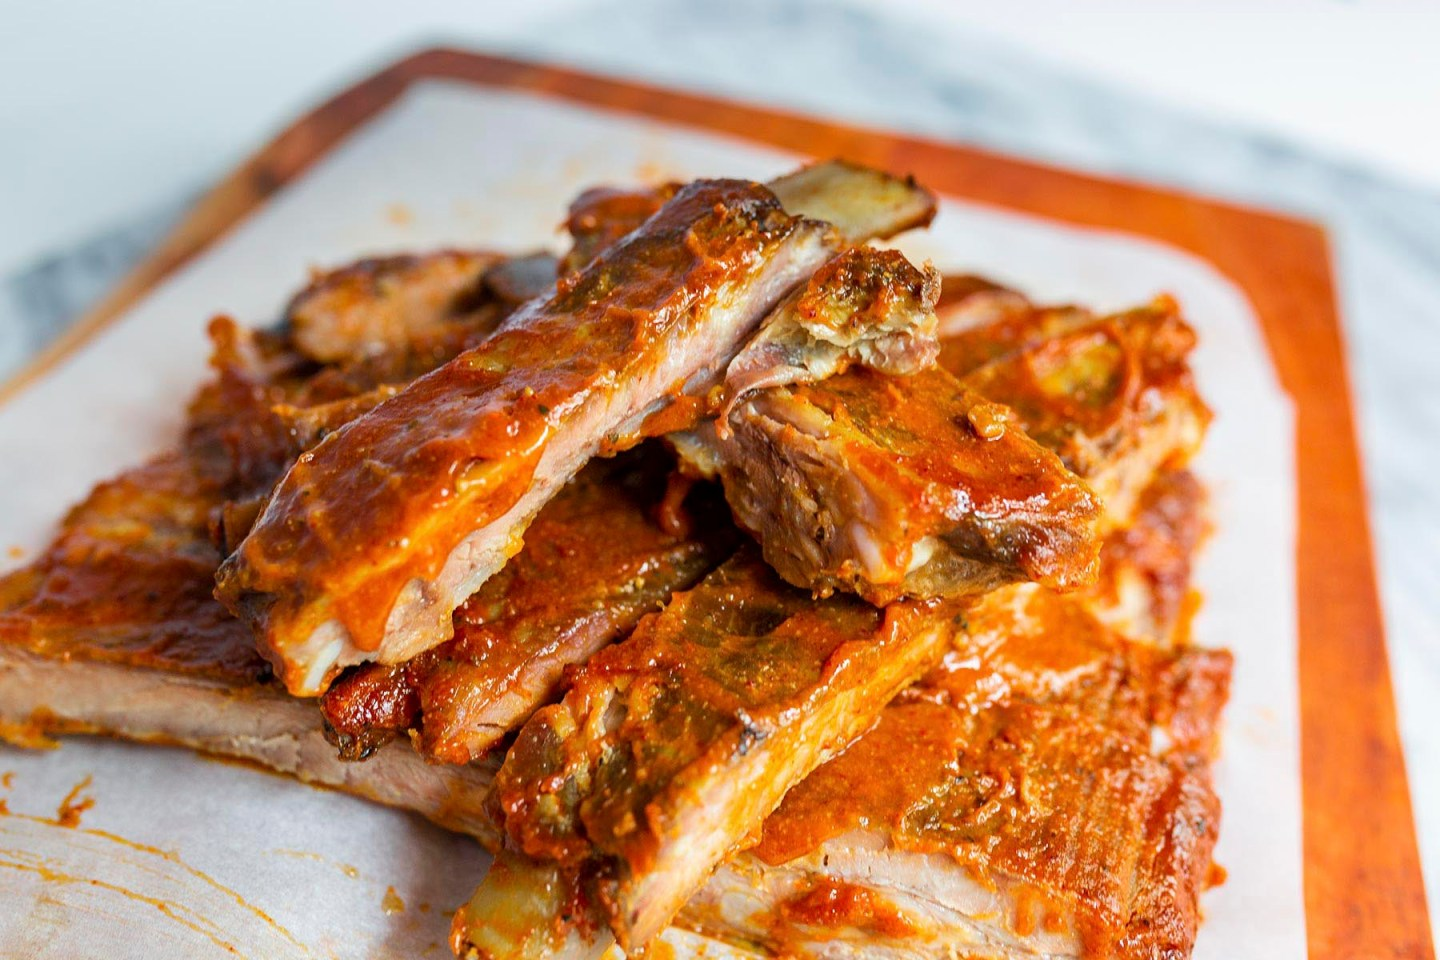 Pork Ribs Slow Roasted in the Oven